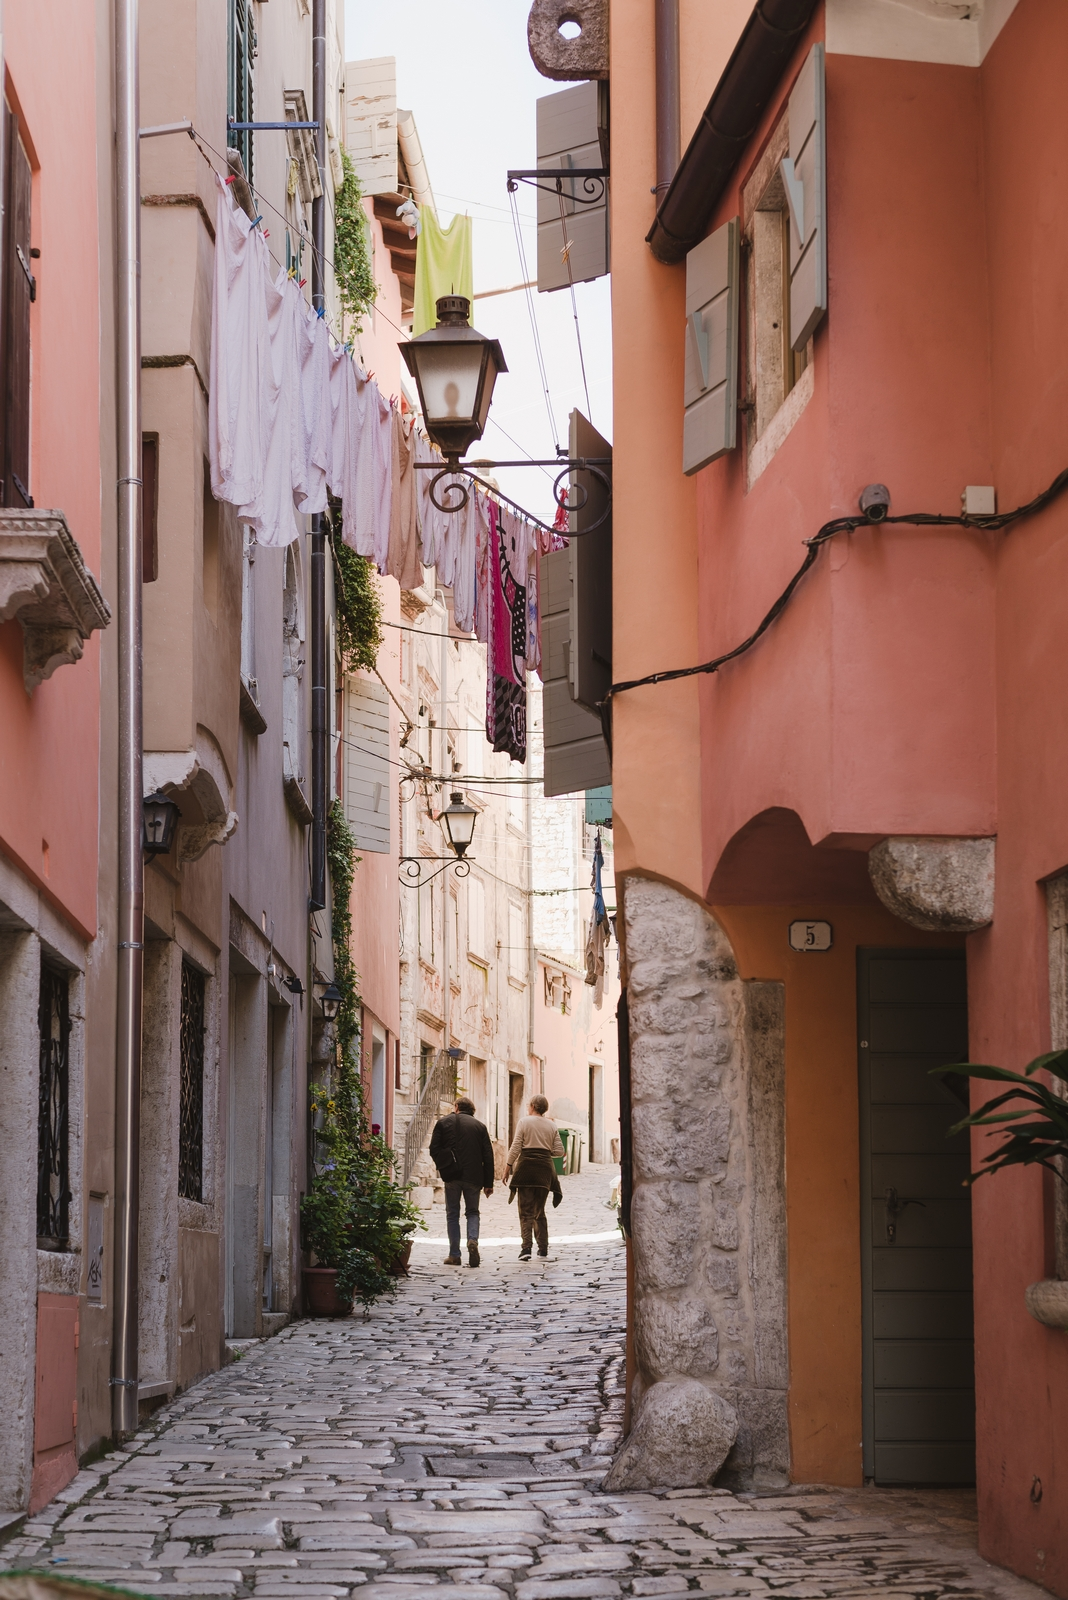 Narrow alley in the old town of Rovinj, Istria, Croatia - from travel blog http://Epepa.eu